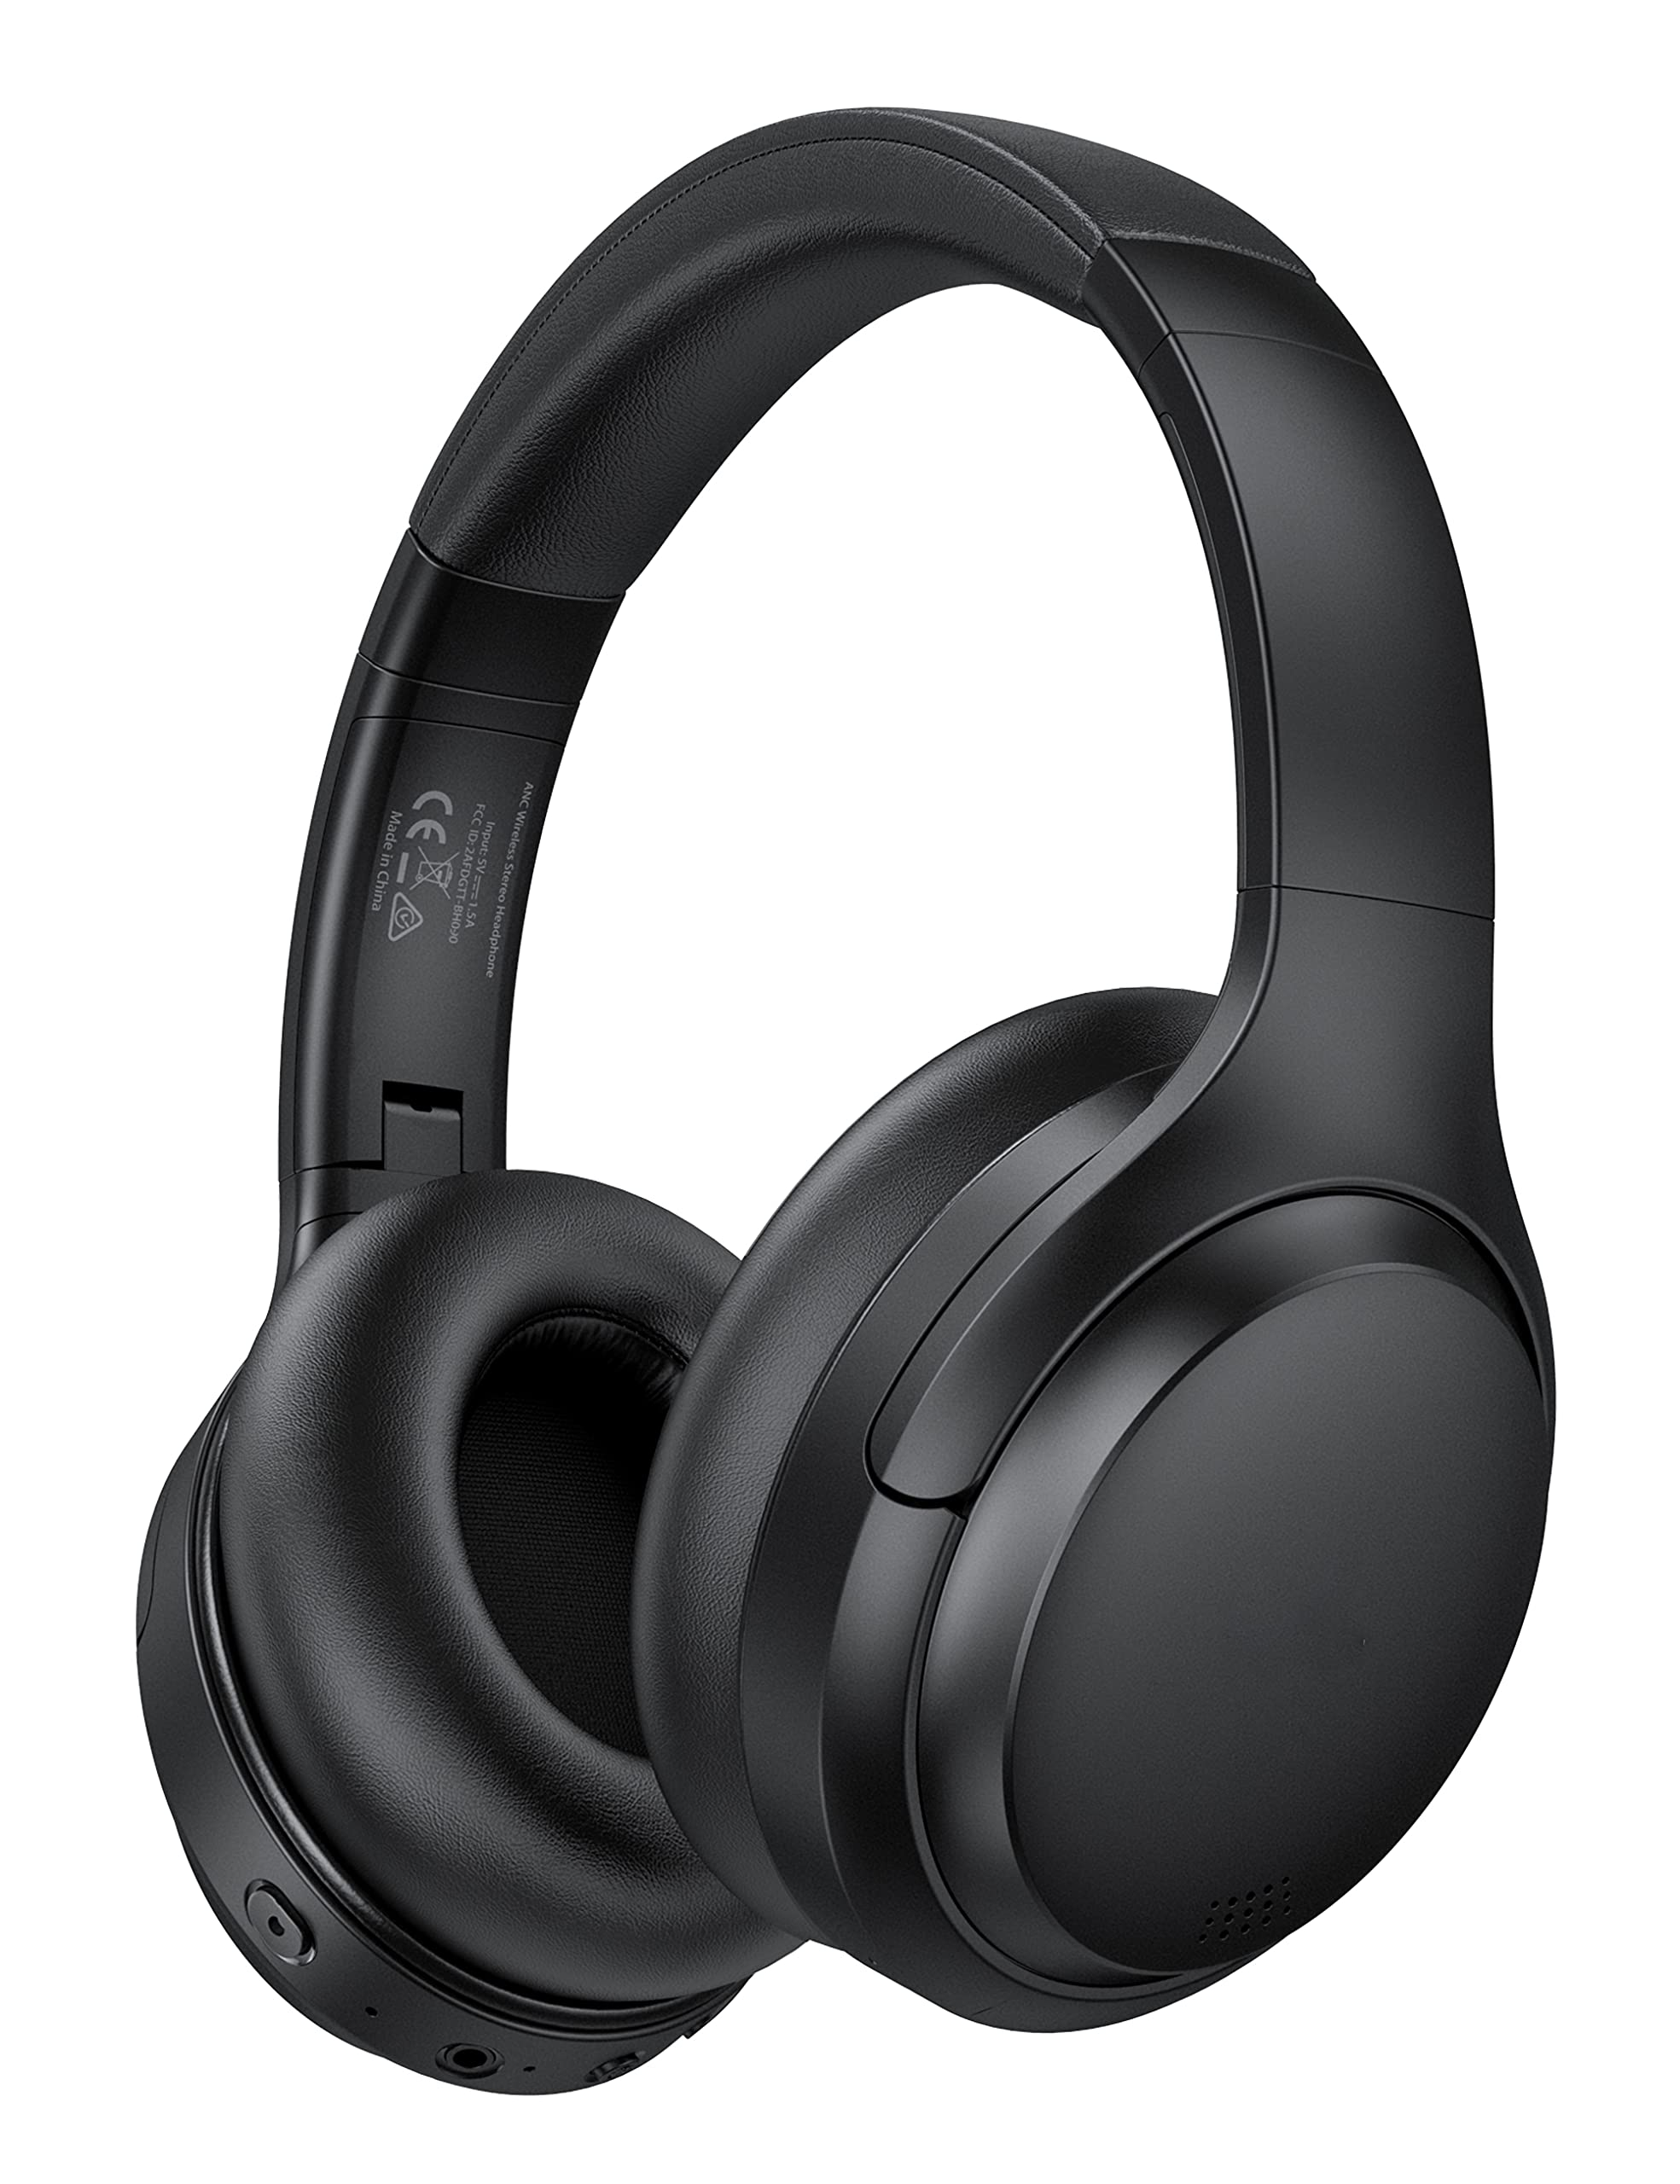 Hybrid Active Noise Cancelling Headphones with 35H Playtime, Type-C Fast Charging, Bluetooth 5.0, Hi-Fi Stereo Sound, Built-in Mic, Soft Protein Earpads, Over Ear Foldable Wireless Headset